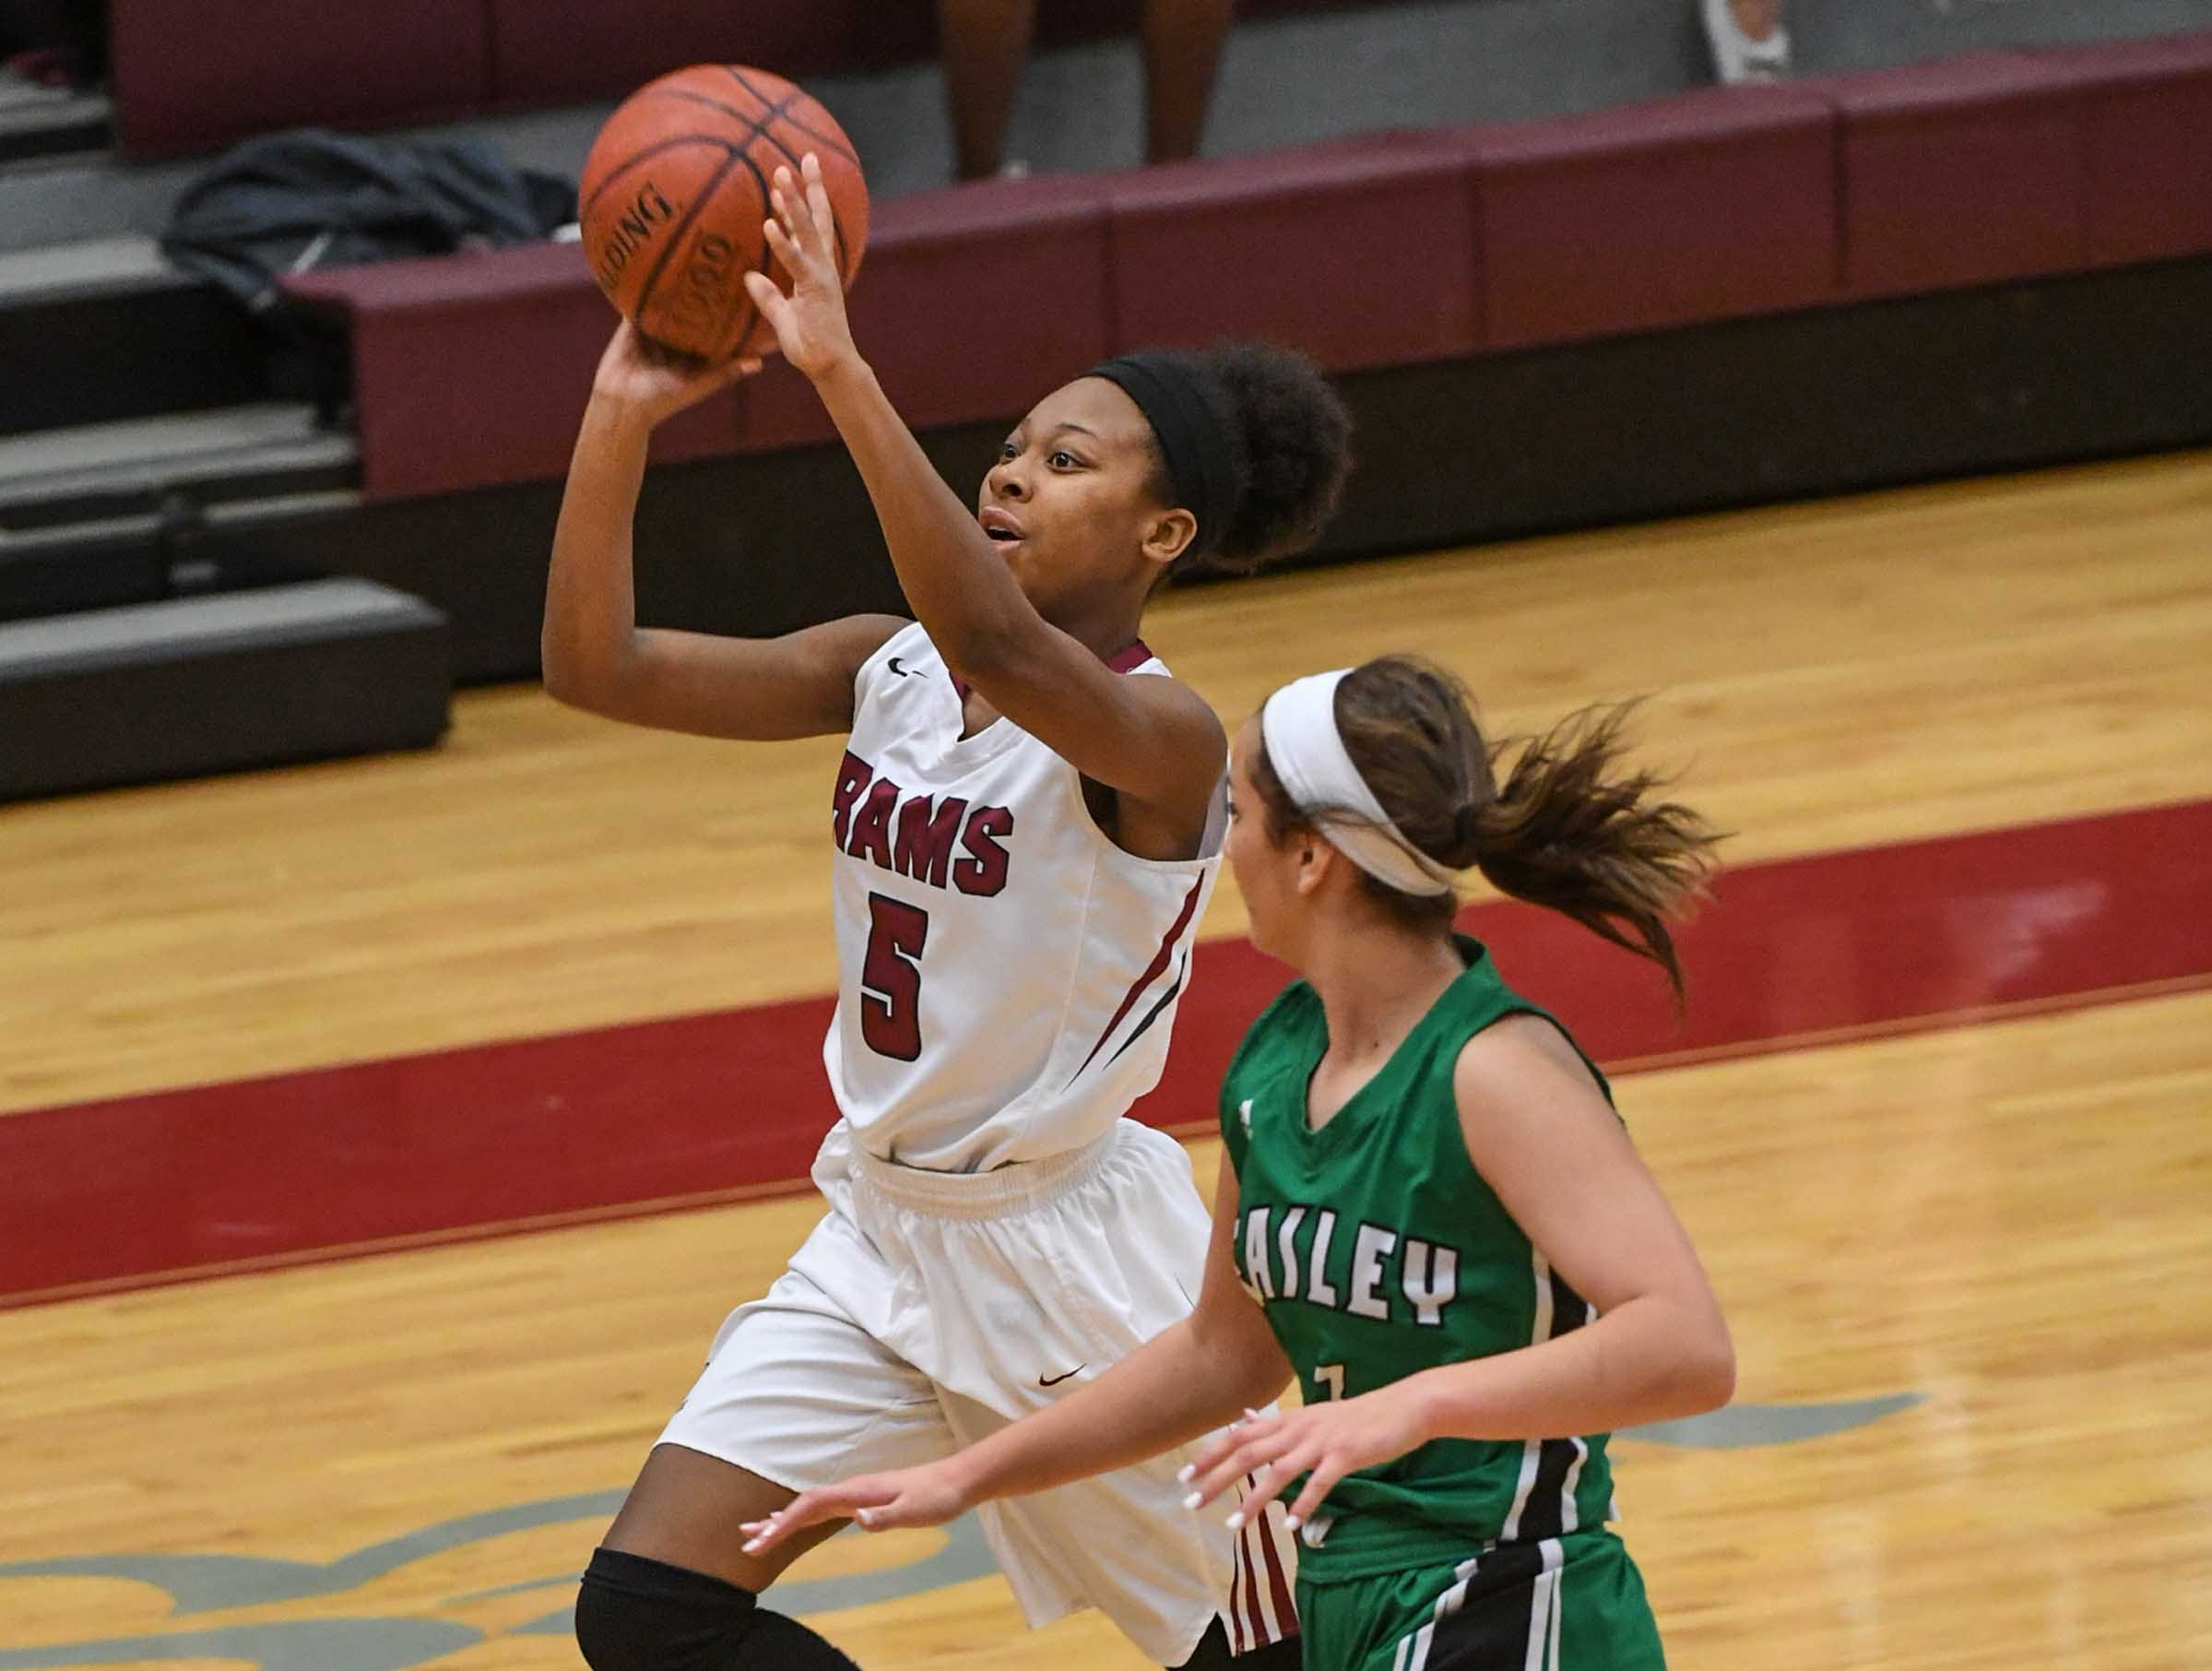 Westside senior Chelsea Adger(5) shoots during the third quarter at Westside High School in Anderson on Friday.